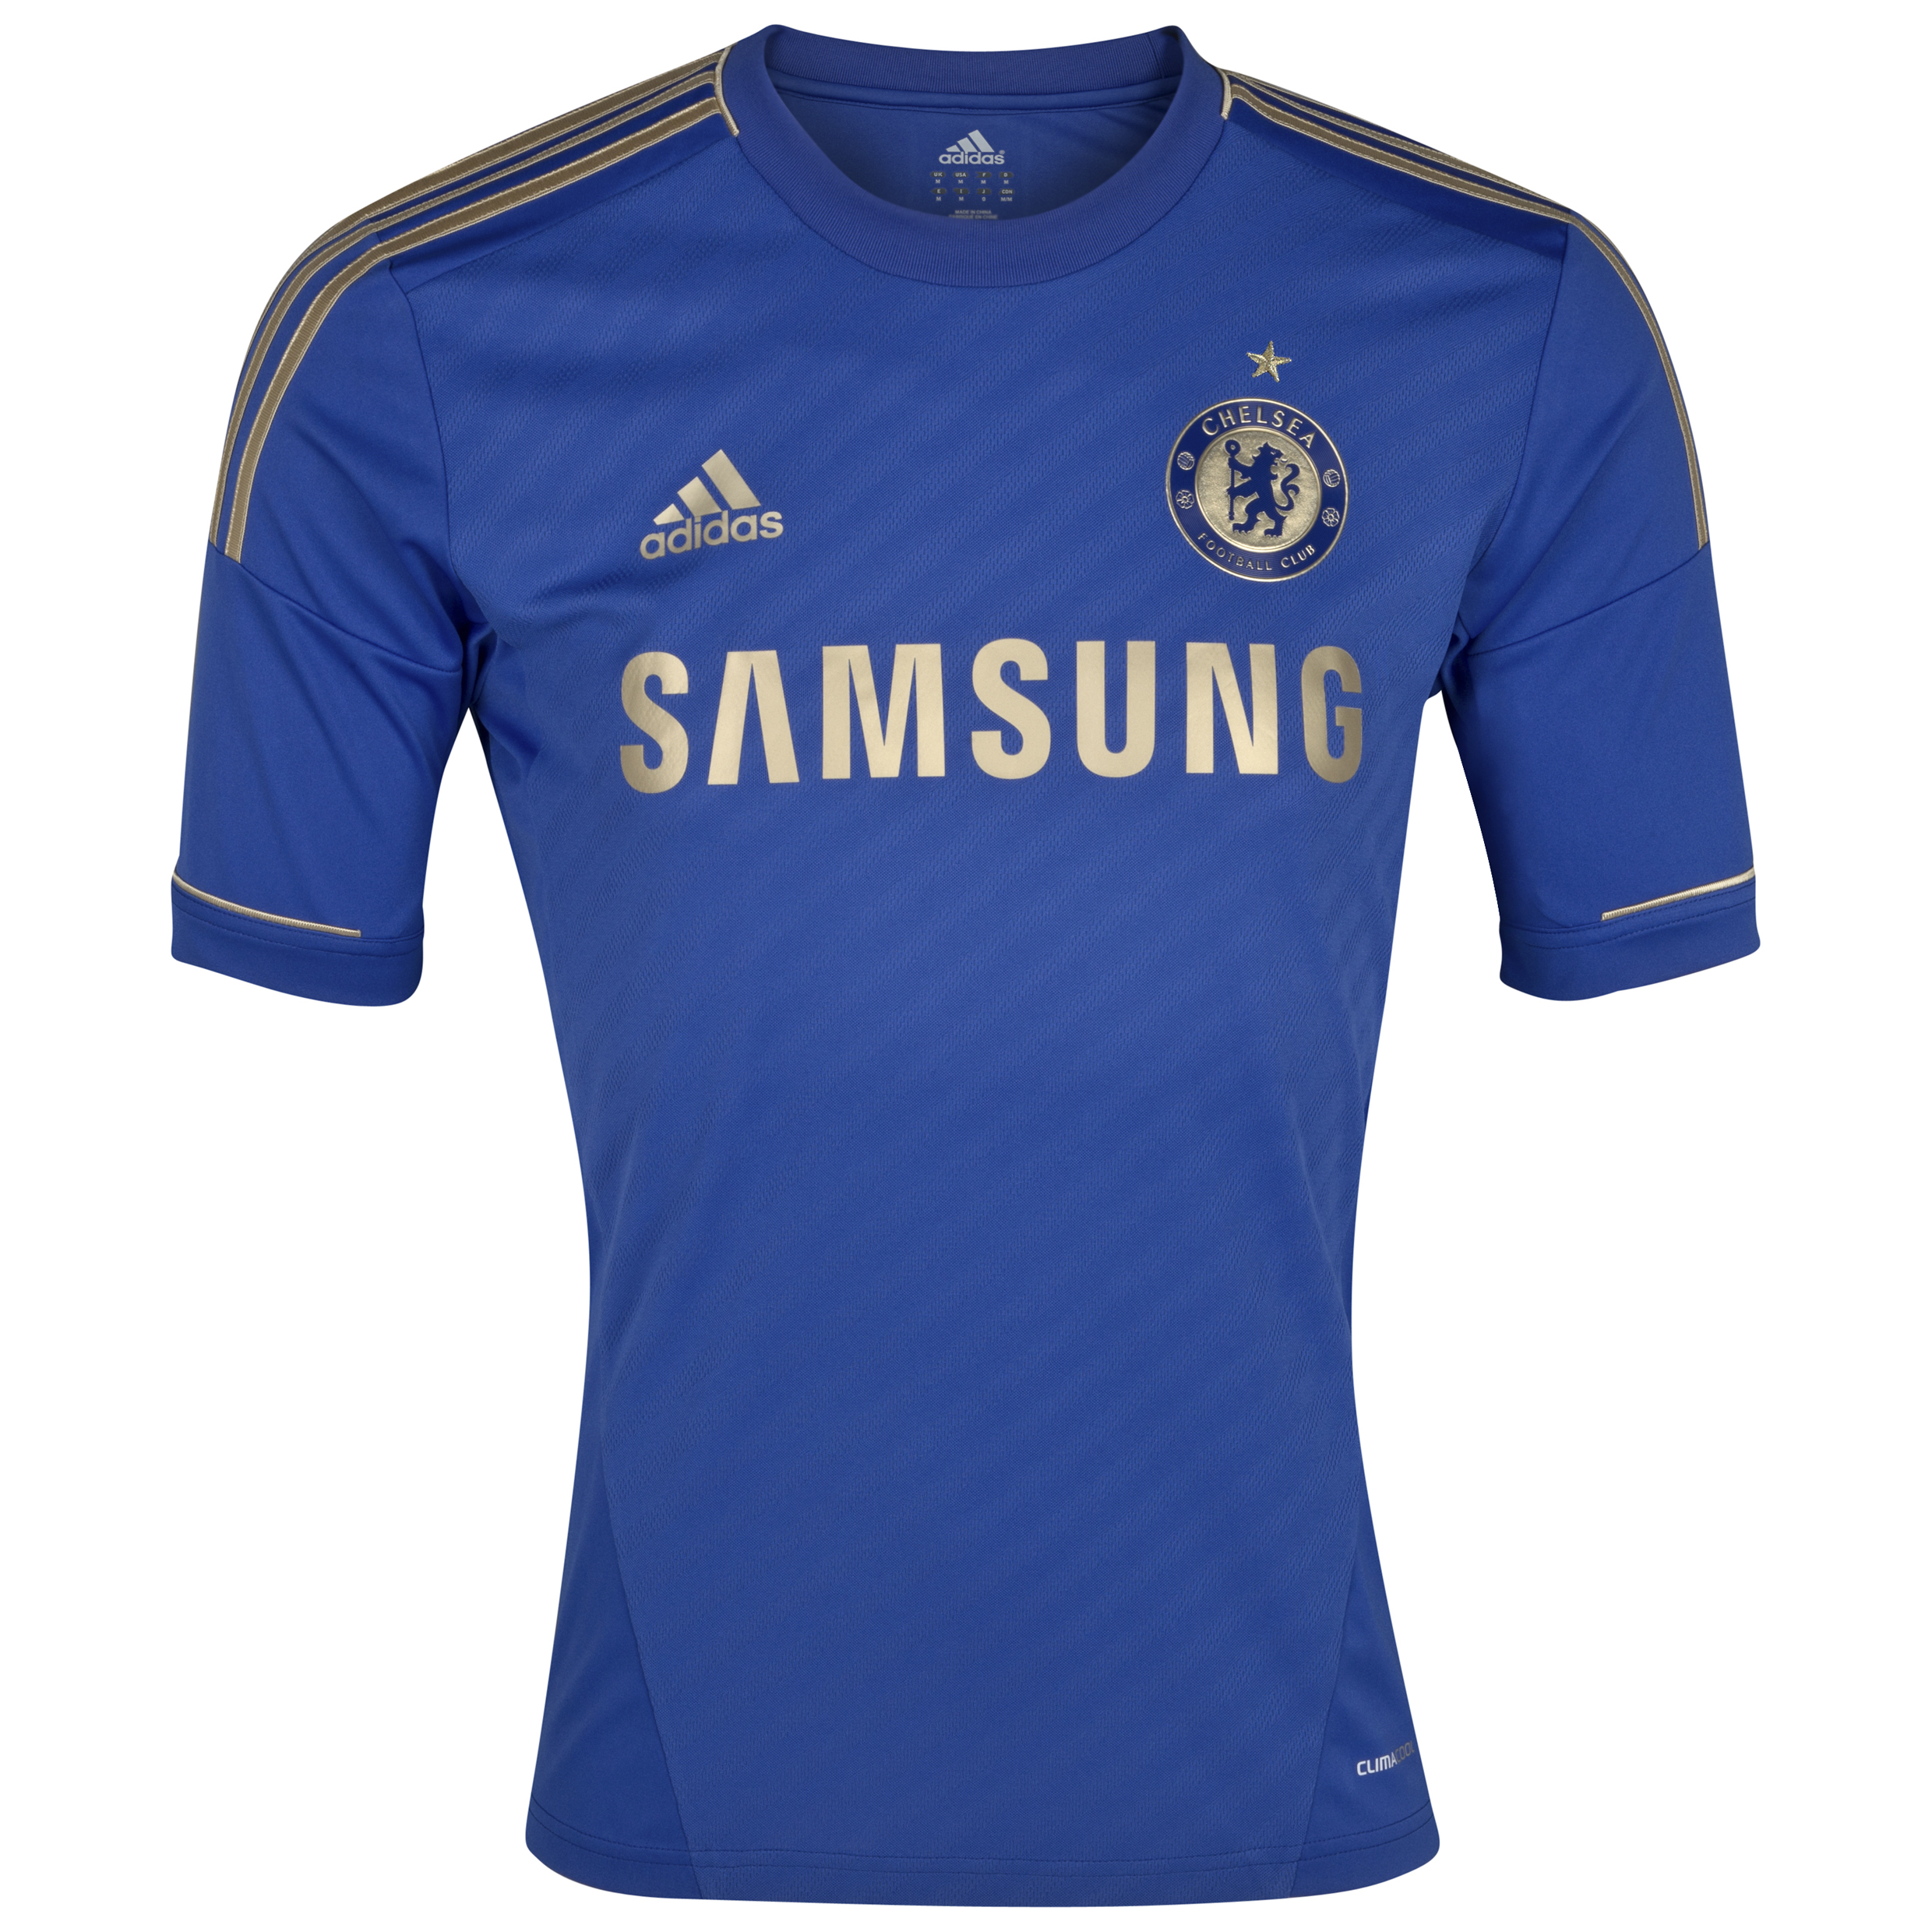 Chelsea Home Shirt 2012/13 - Outsize Including Gold Star